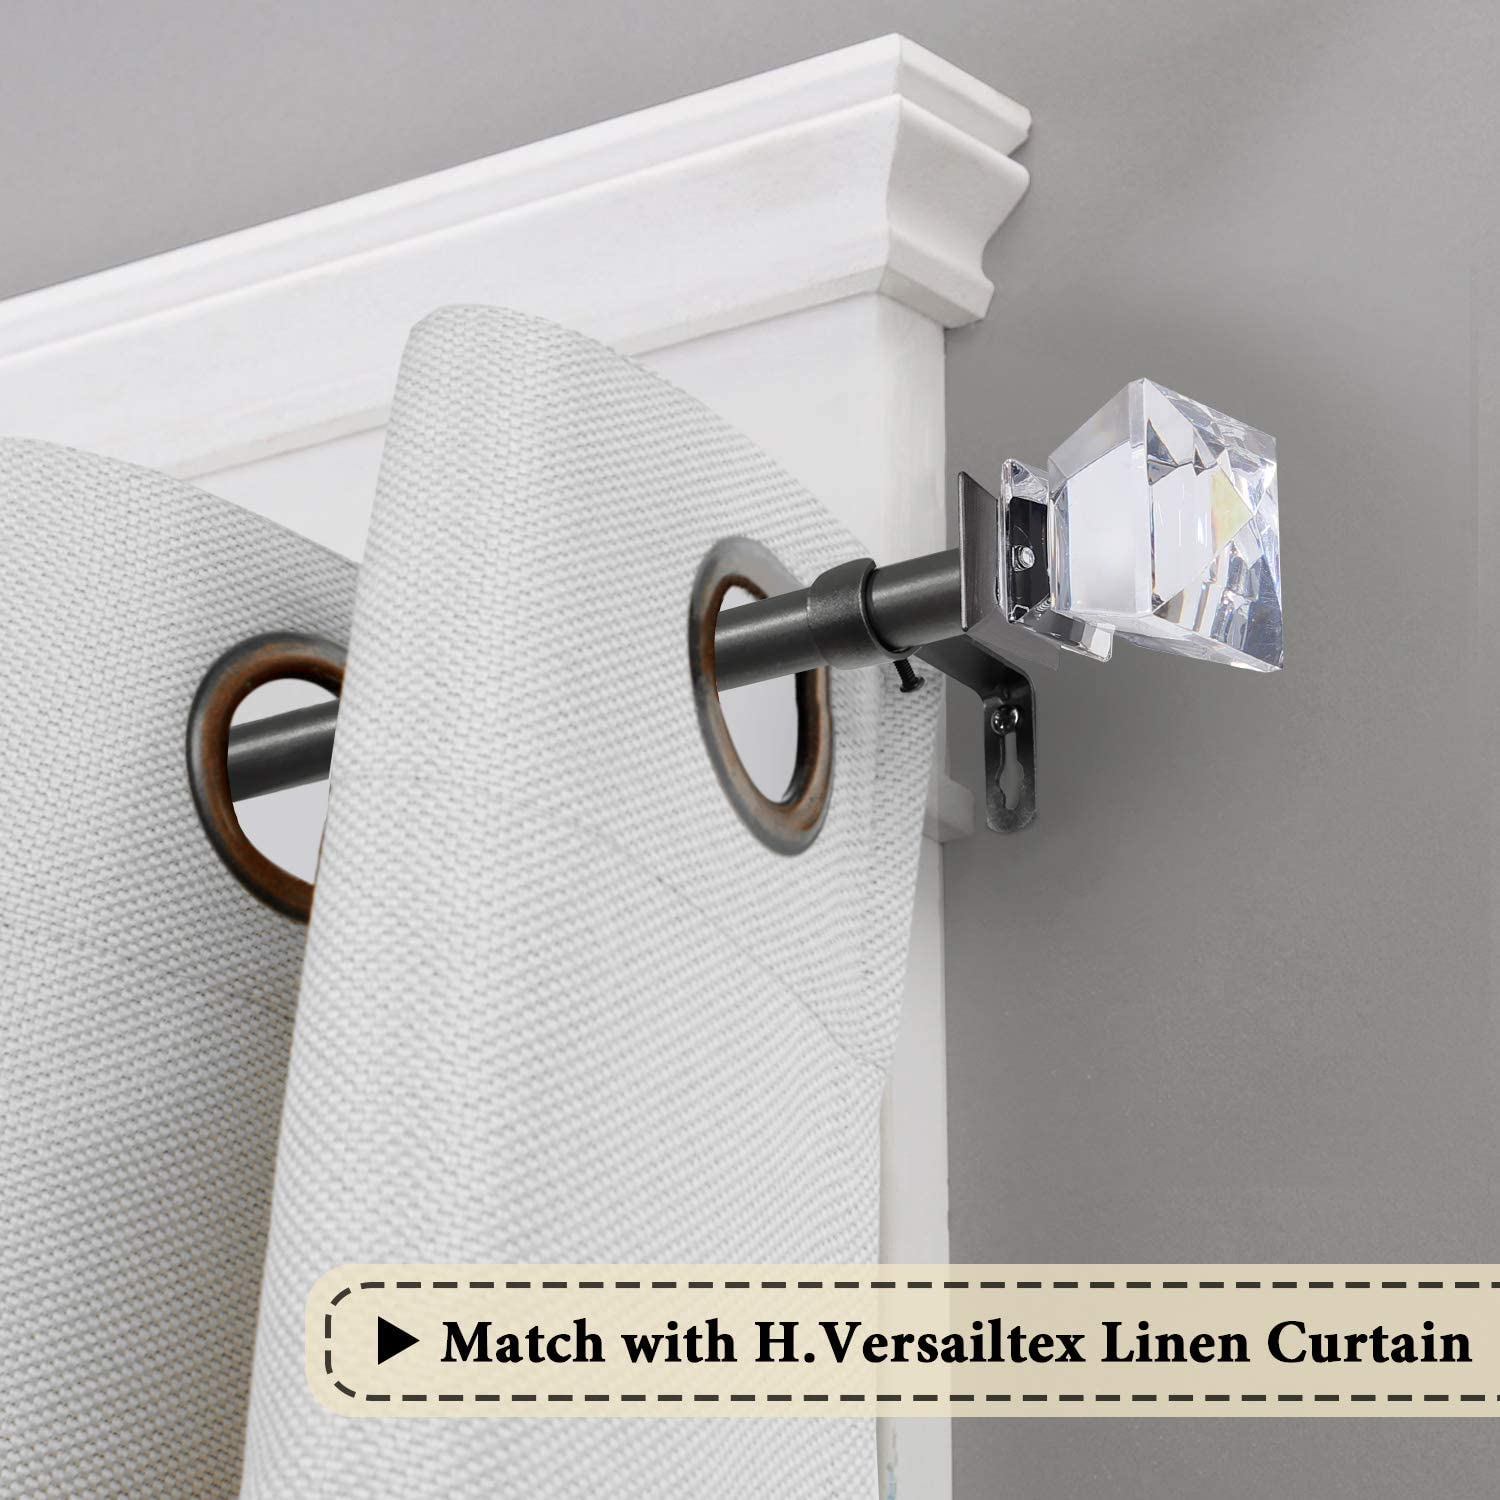 3//4 H.VERSAILTEX Adjustable Curtain Rod for Windows 48 to 84 Inch Inch Diameter Matte Black Wall Curtain Rod with Acrylic Square Finials